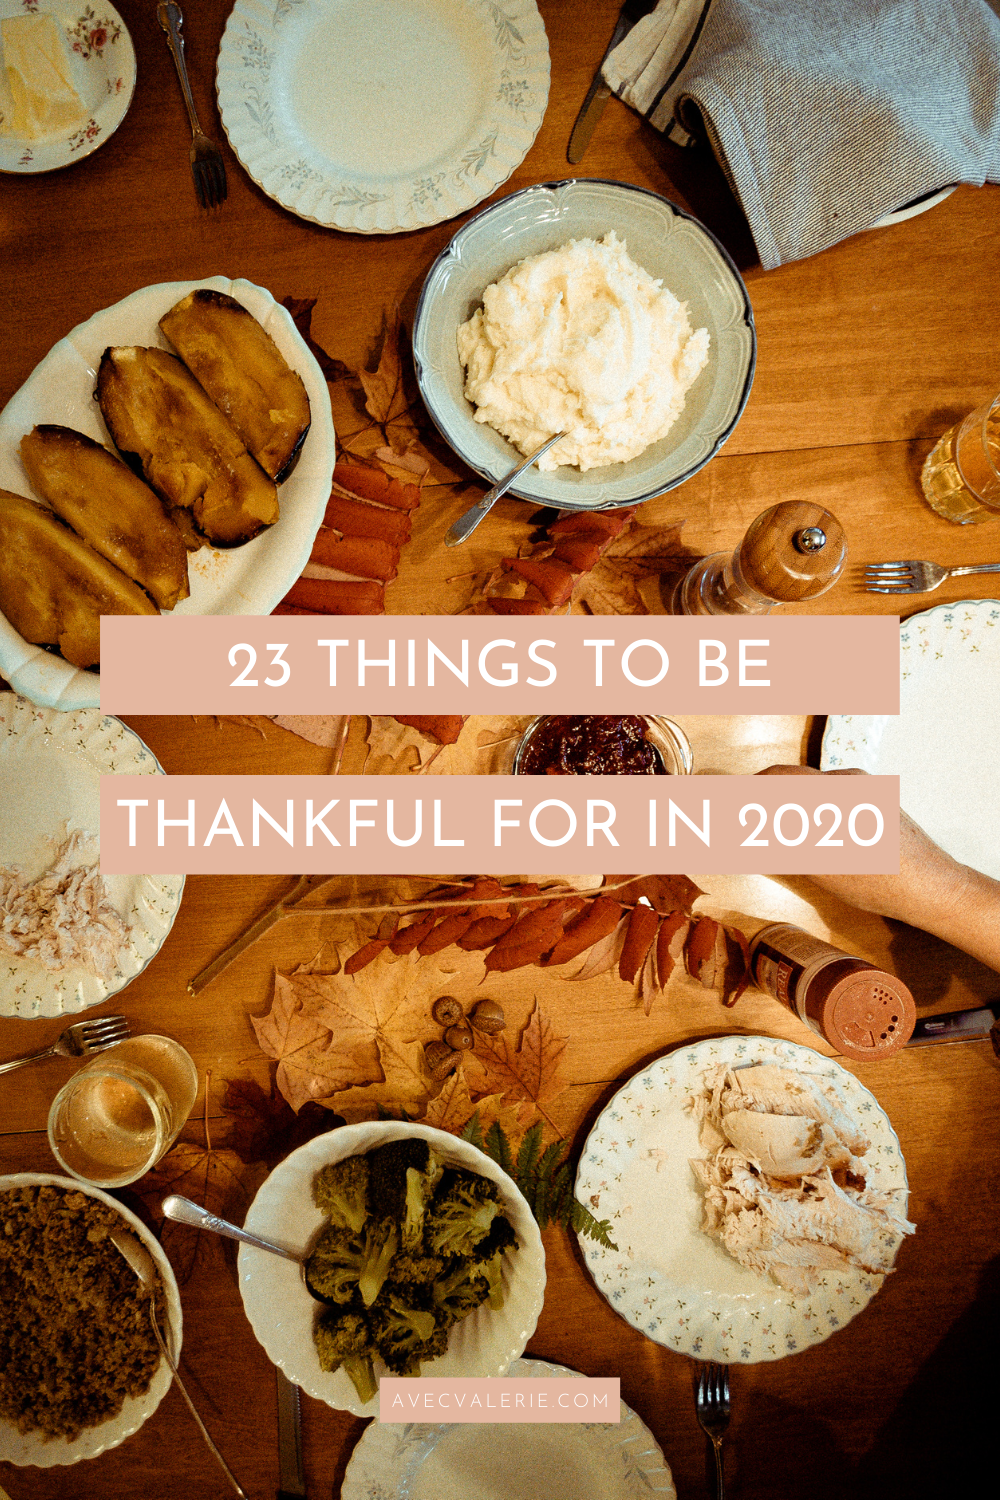 23 Things to be Thankful for in 2020